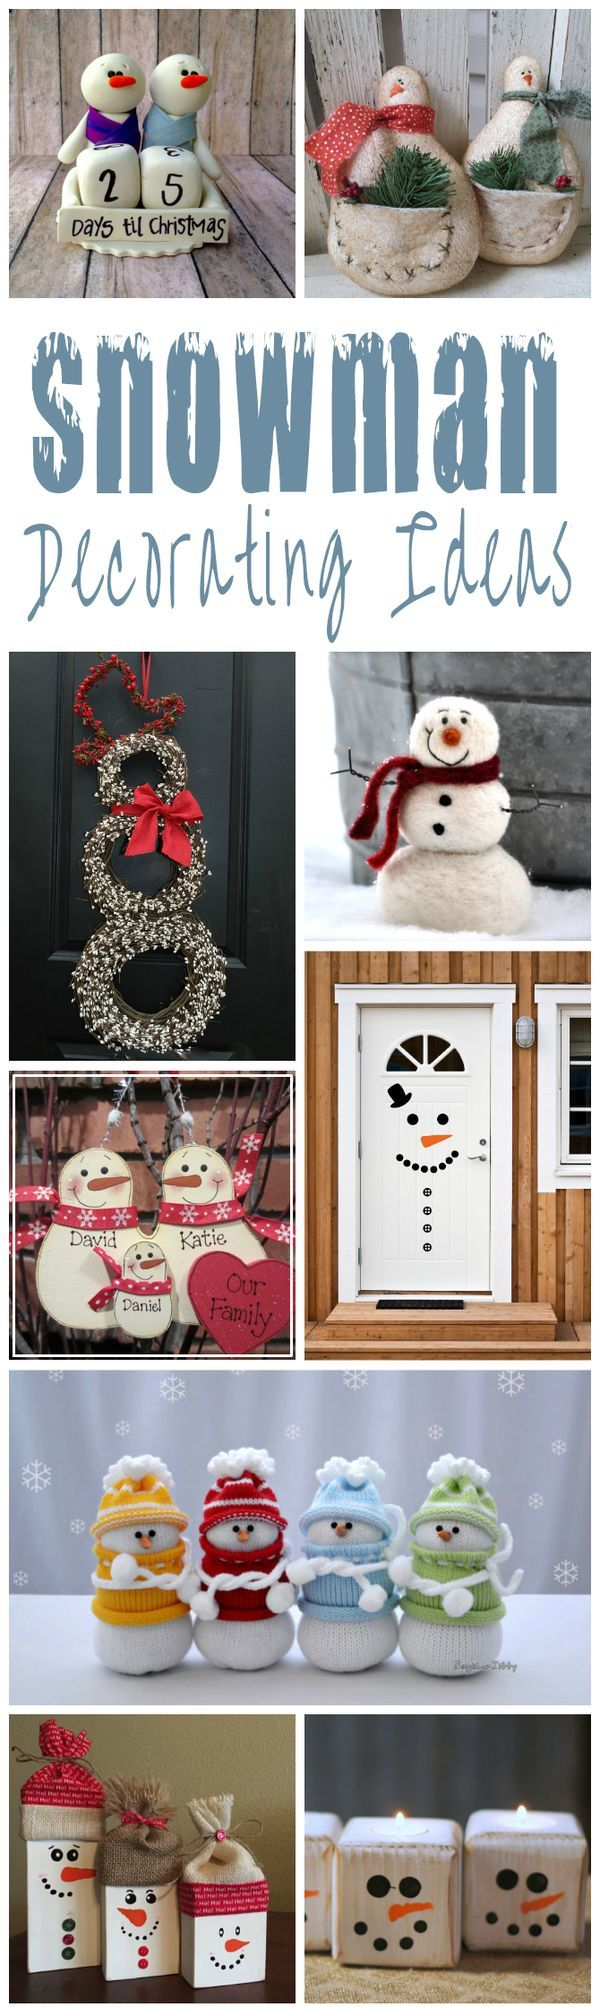 Cute And Charming Snowman Decorating Ideas For Christmas